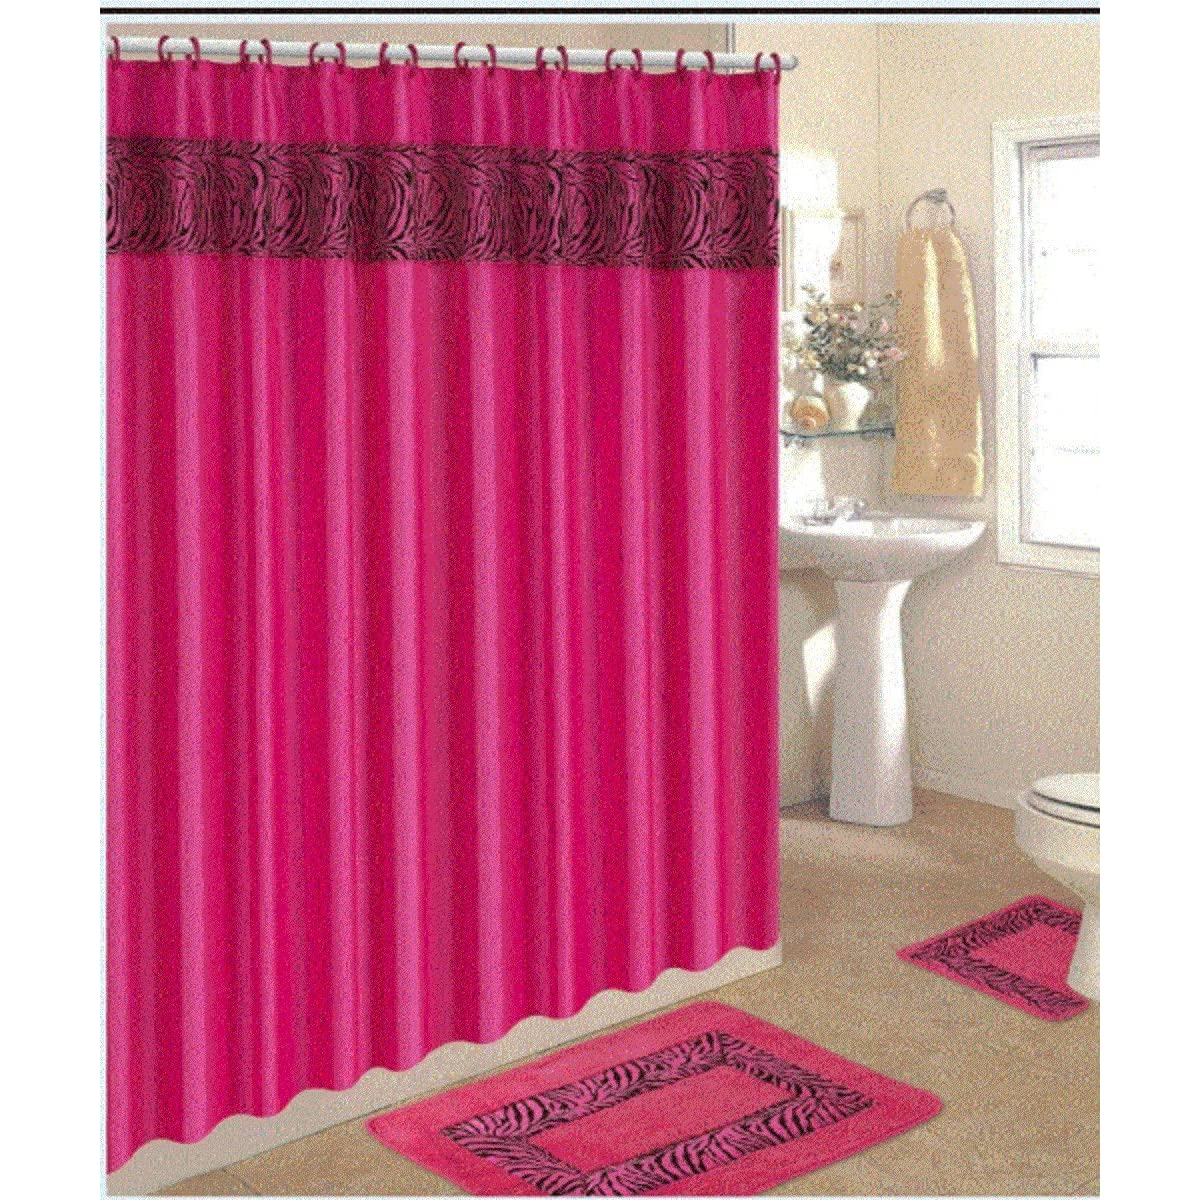 Hot pink curtains - Hot Pink Curtains 14